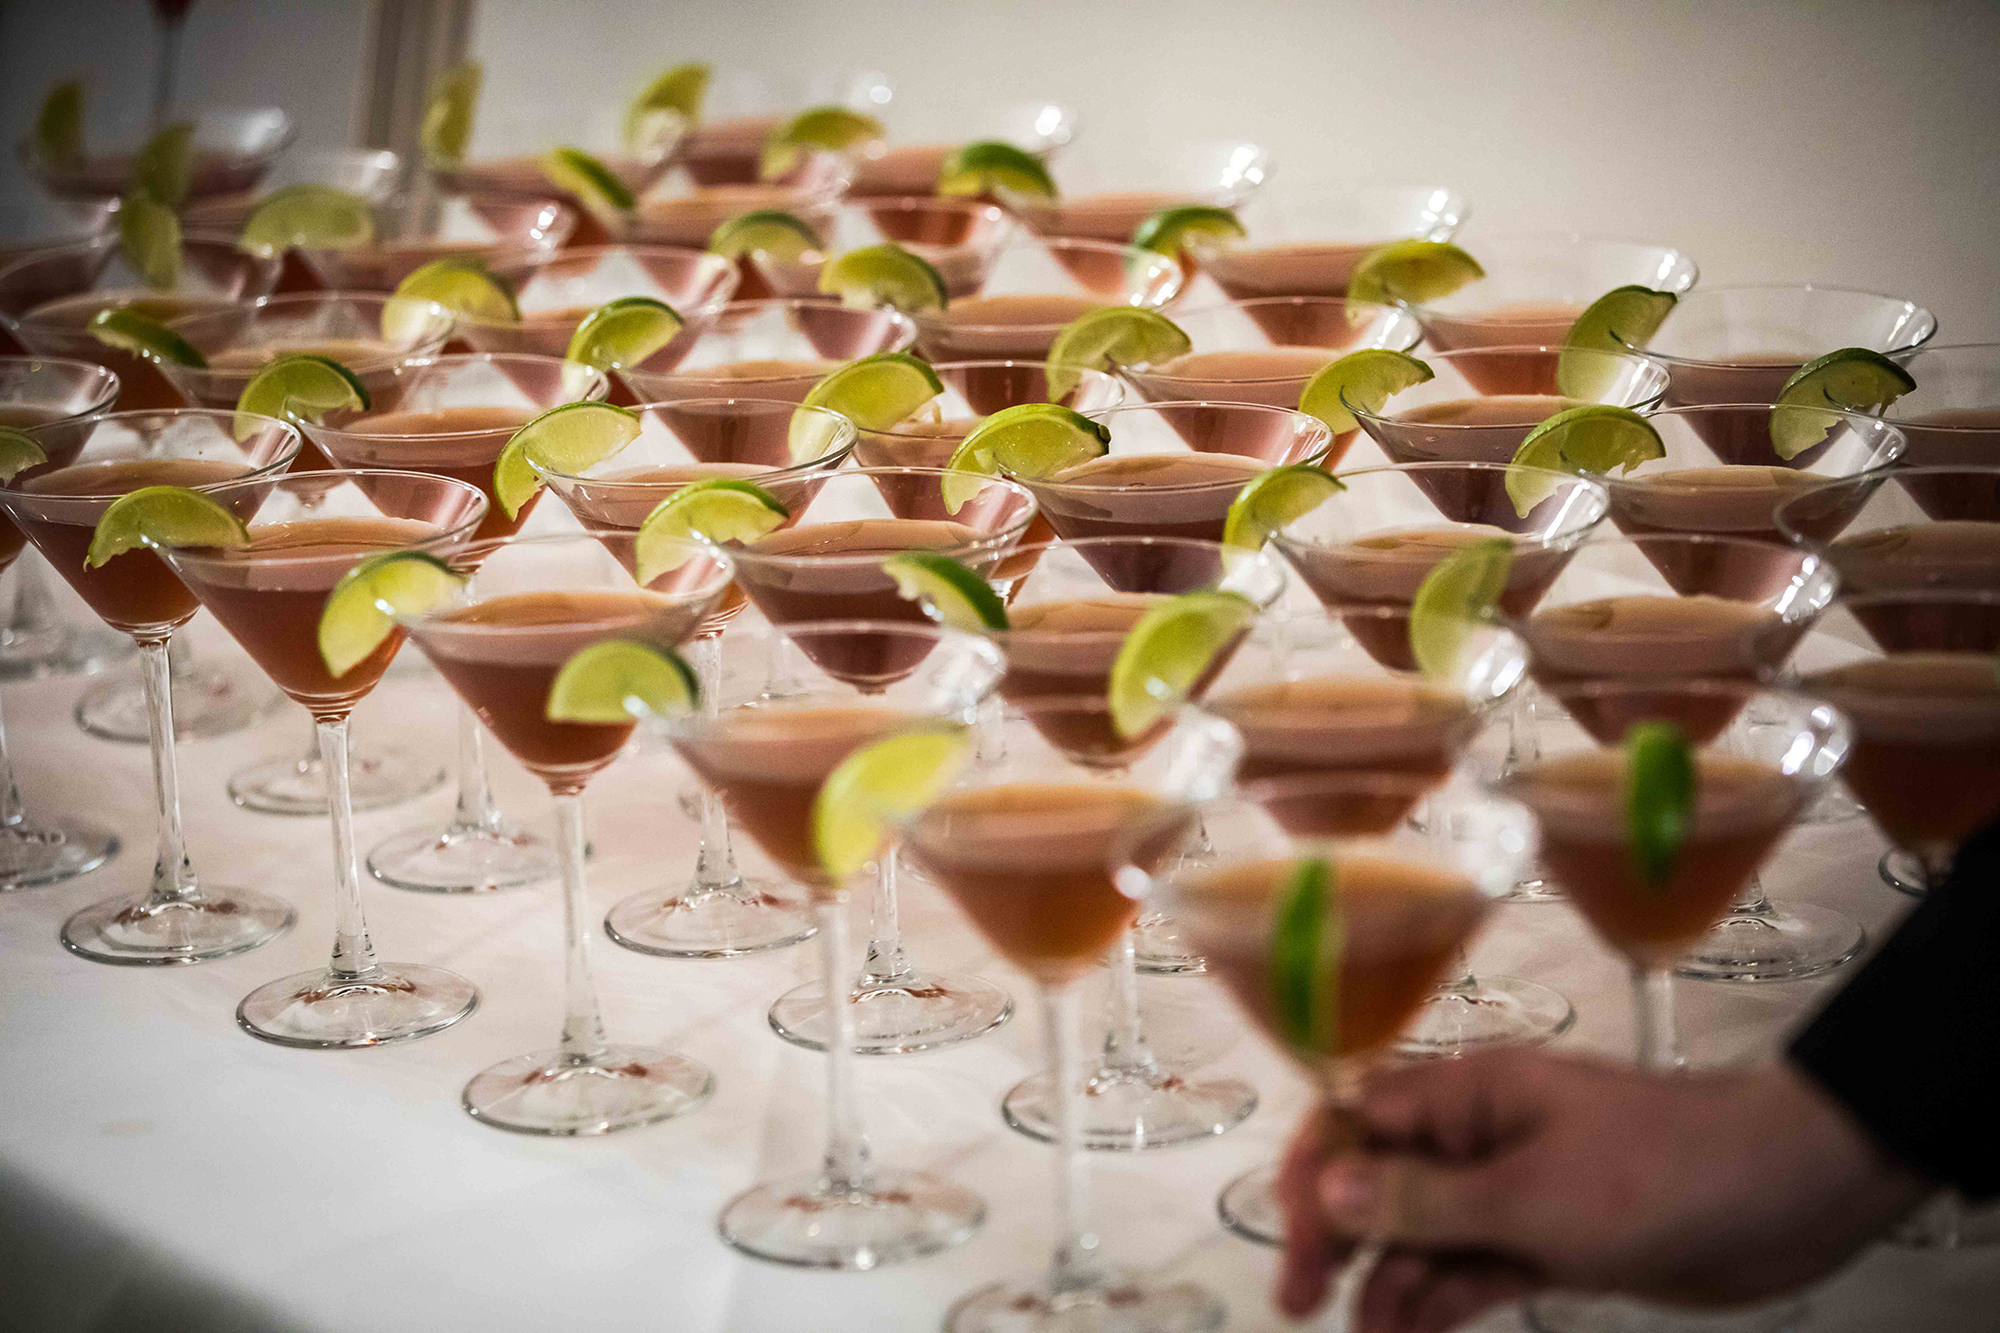 A table full of cocktails for wedding reception guests at Hengrave hall